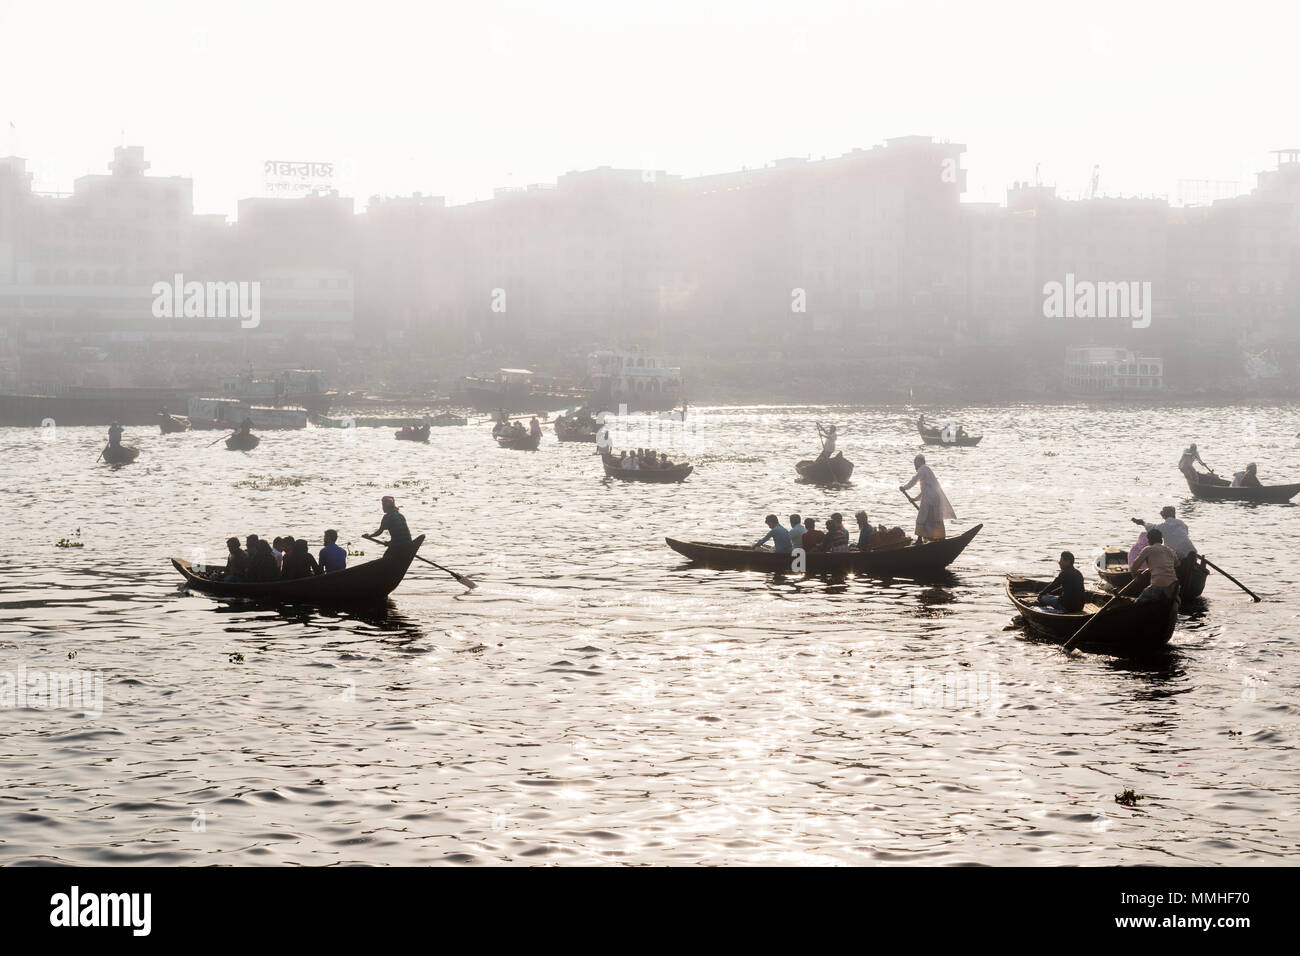 Dhaka, Bangladesh, February 24 2017: Backlit shot of small wooden boats used as a taxi operate on the Buriganga River in Dhaka Bangladesh on a foggy m - Stock Image